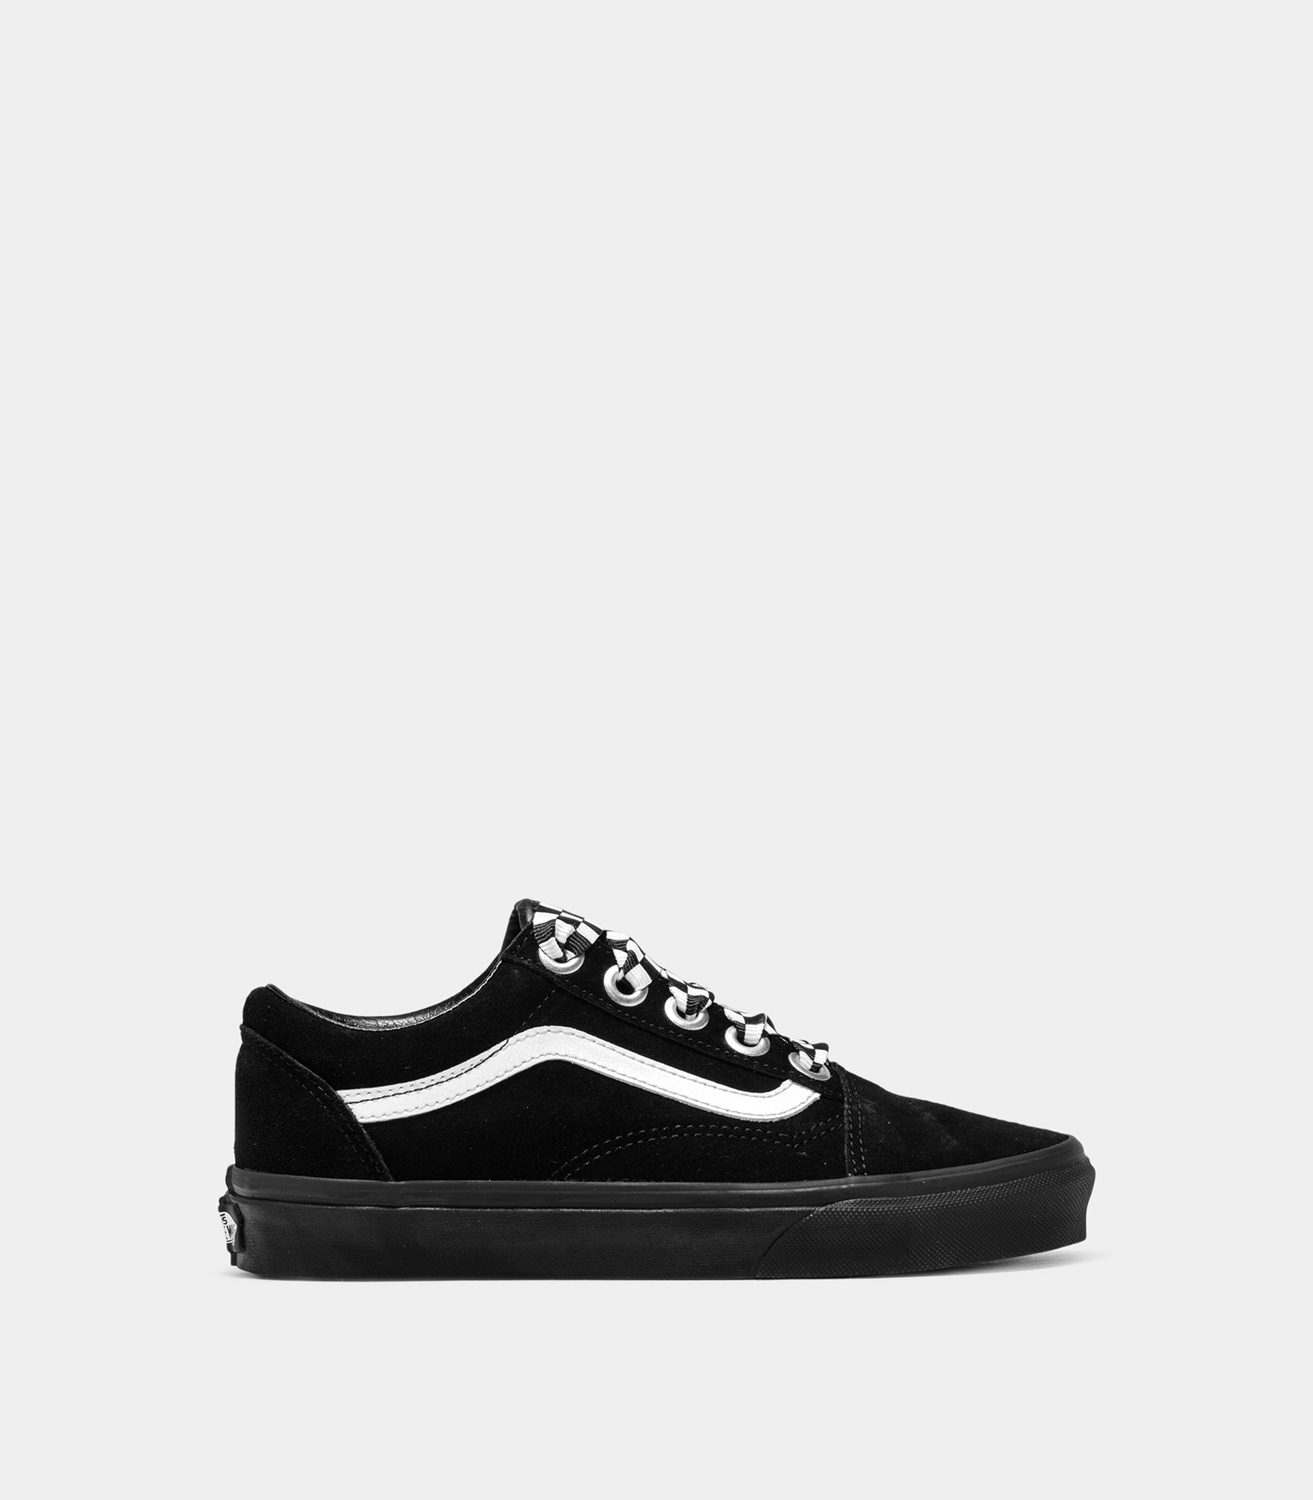 f213df888bc995 VANS OLD SKOOL CHECK LACE SNEAKERS COLOR BLACK